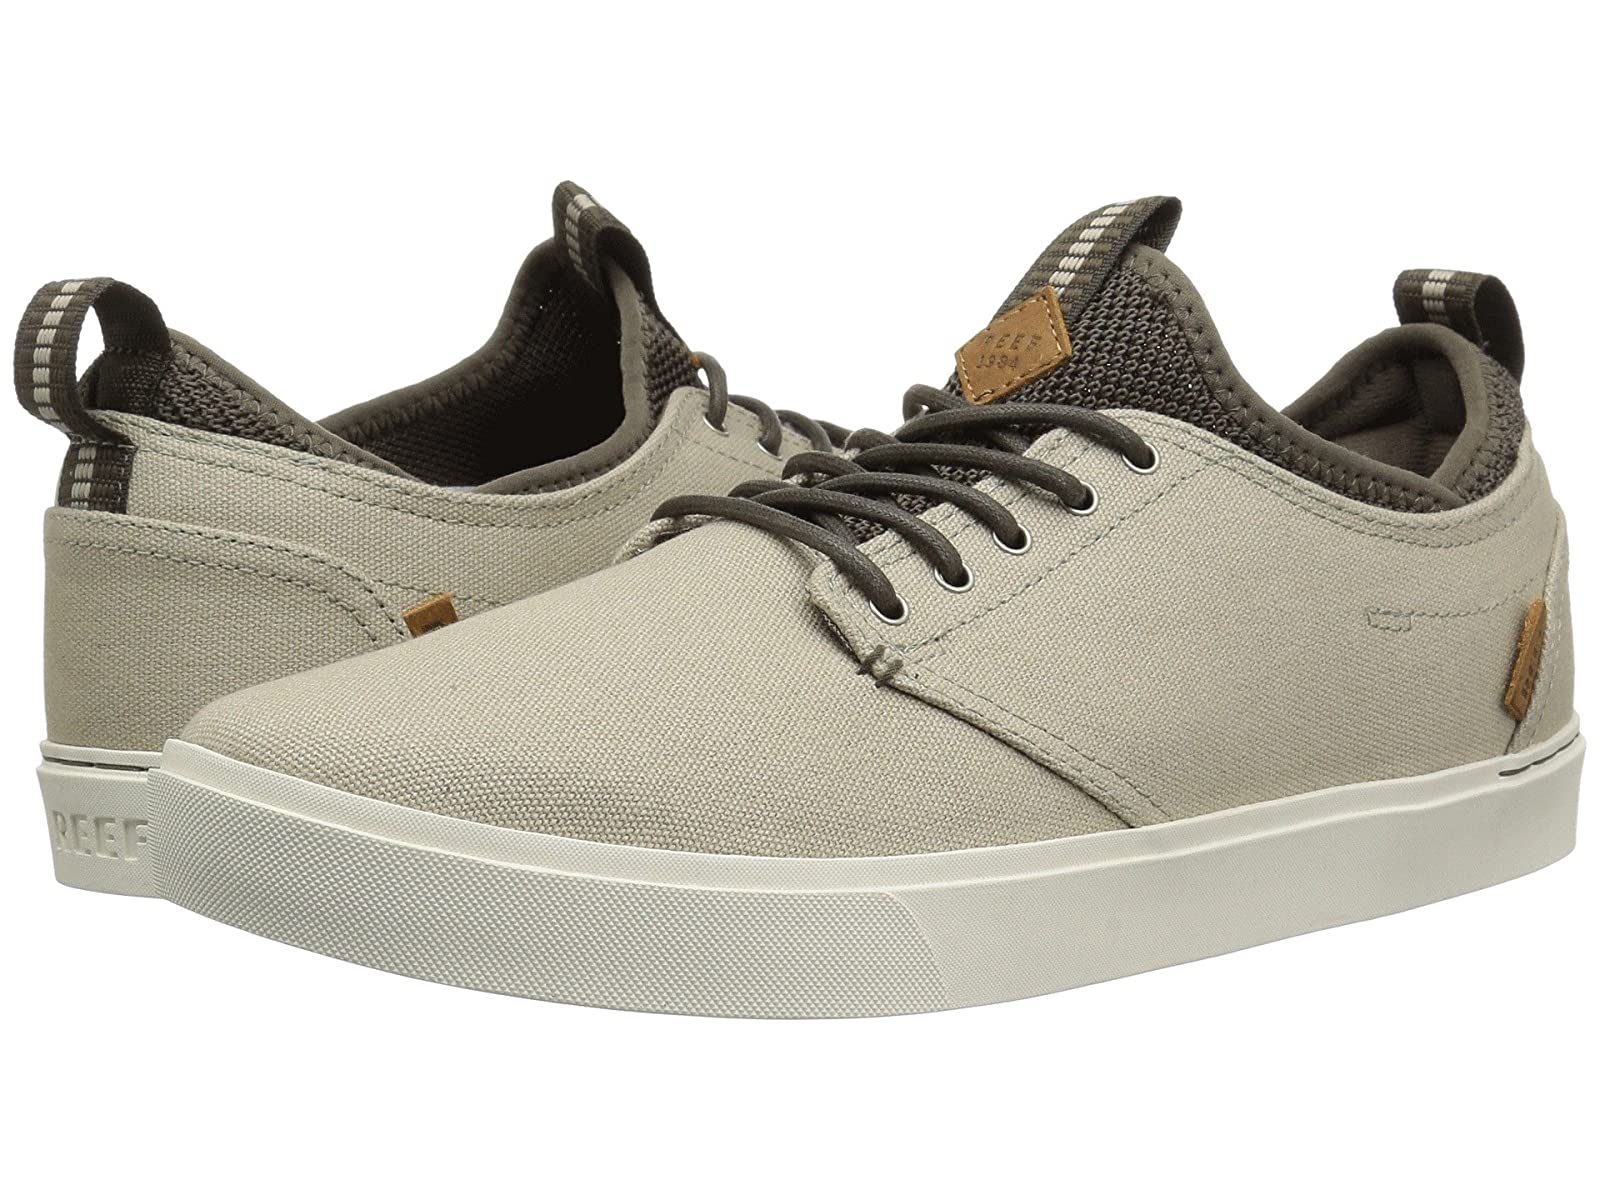 Reef DiscoveryAtmospheric grades have affordable shoes